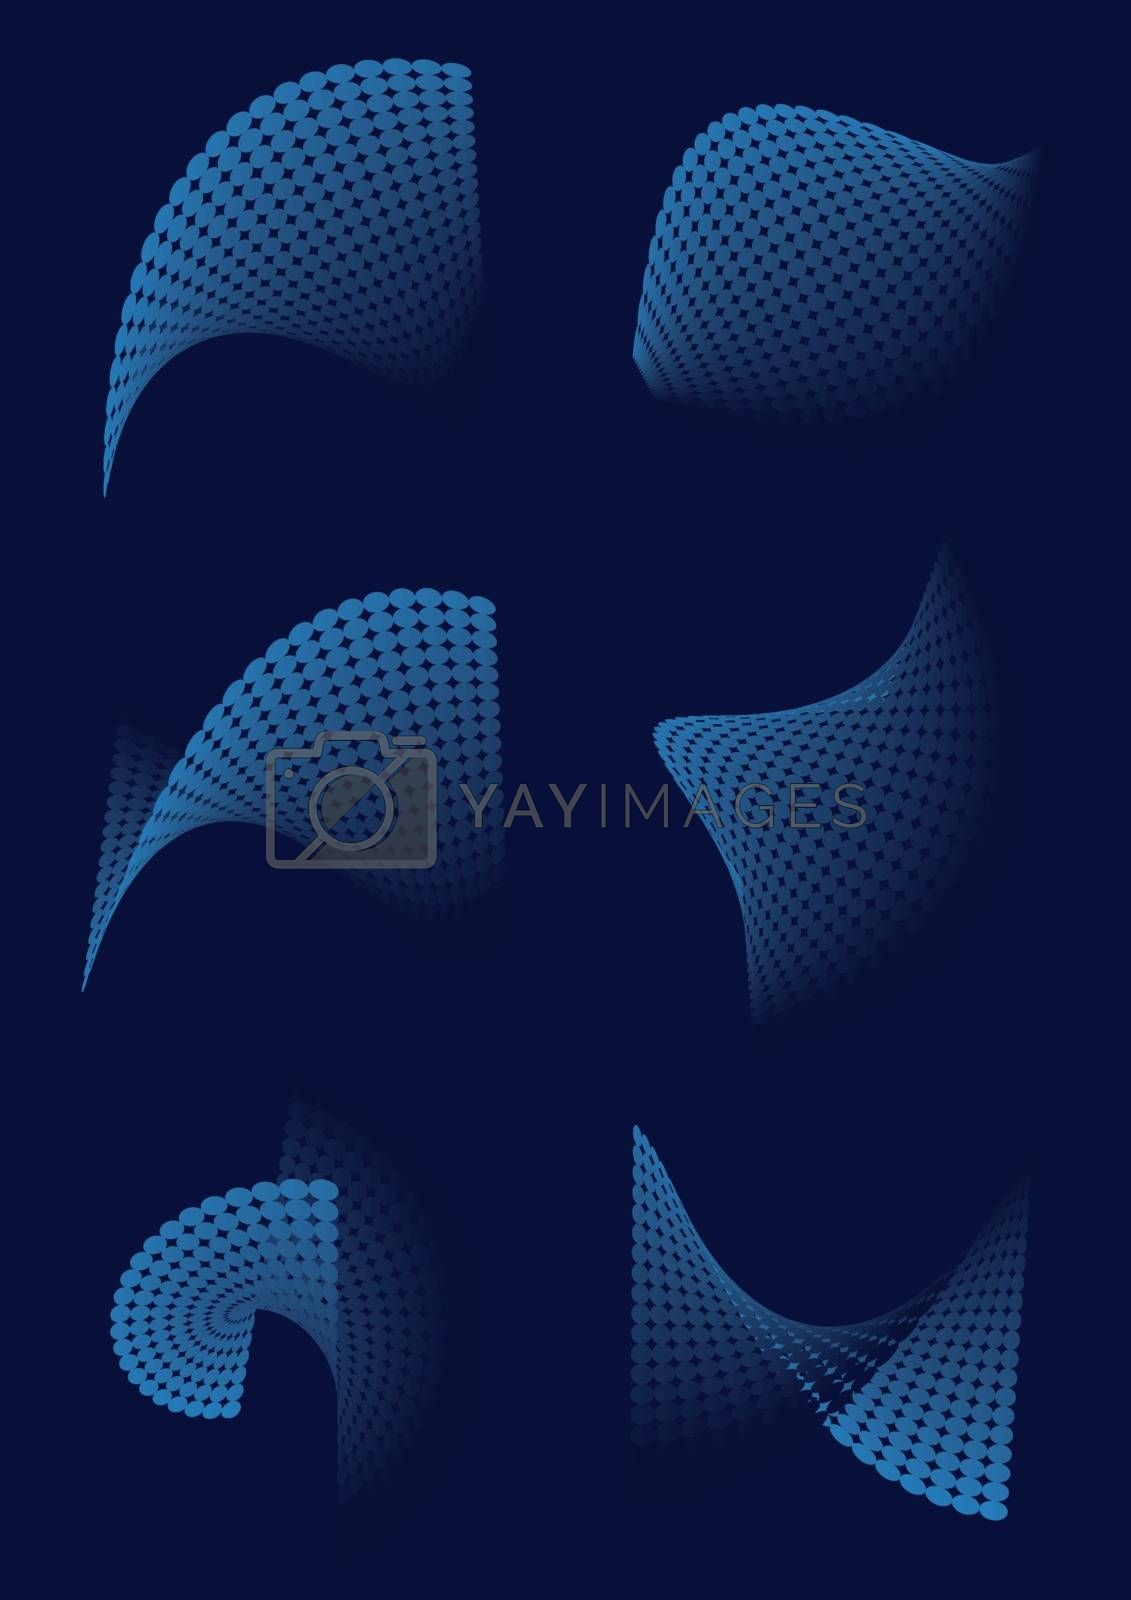 Abstract 3D Shapes on Blue Background for Printed Cover Design by clusterx